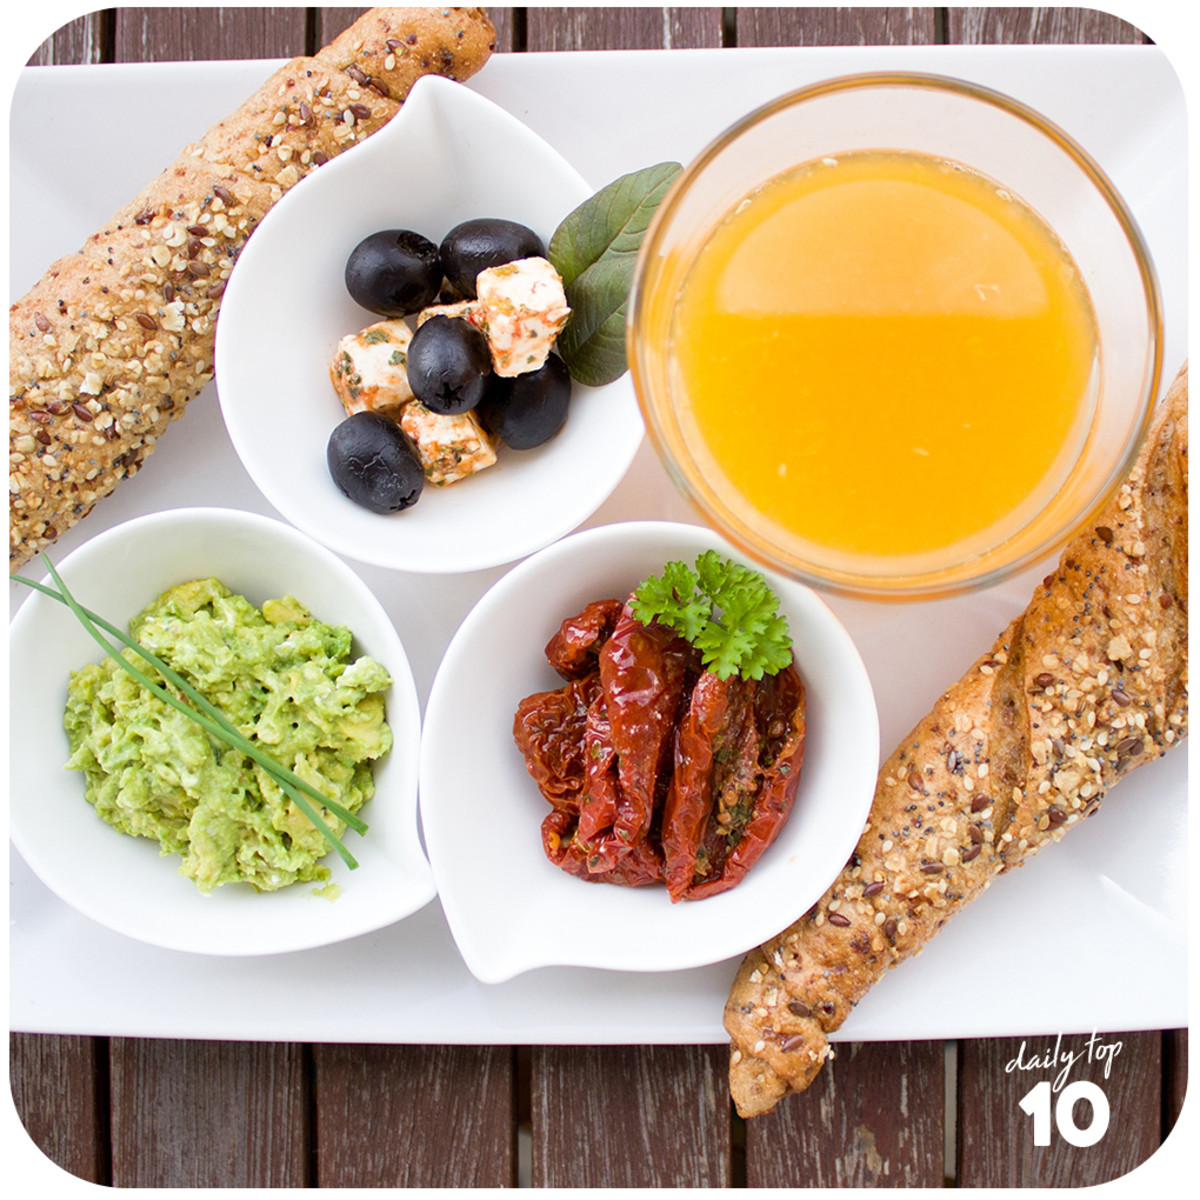 Create a healthy weekly meal plan.